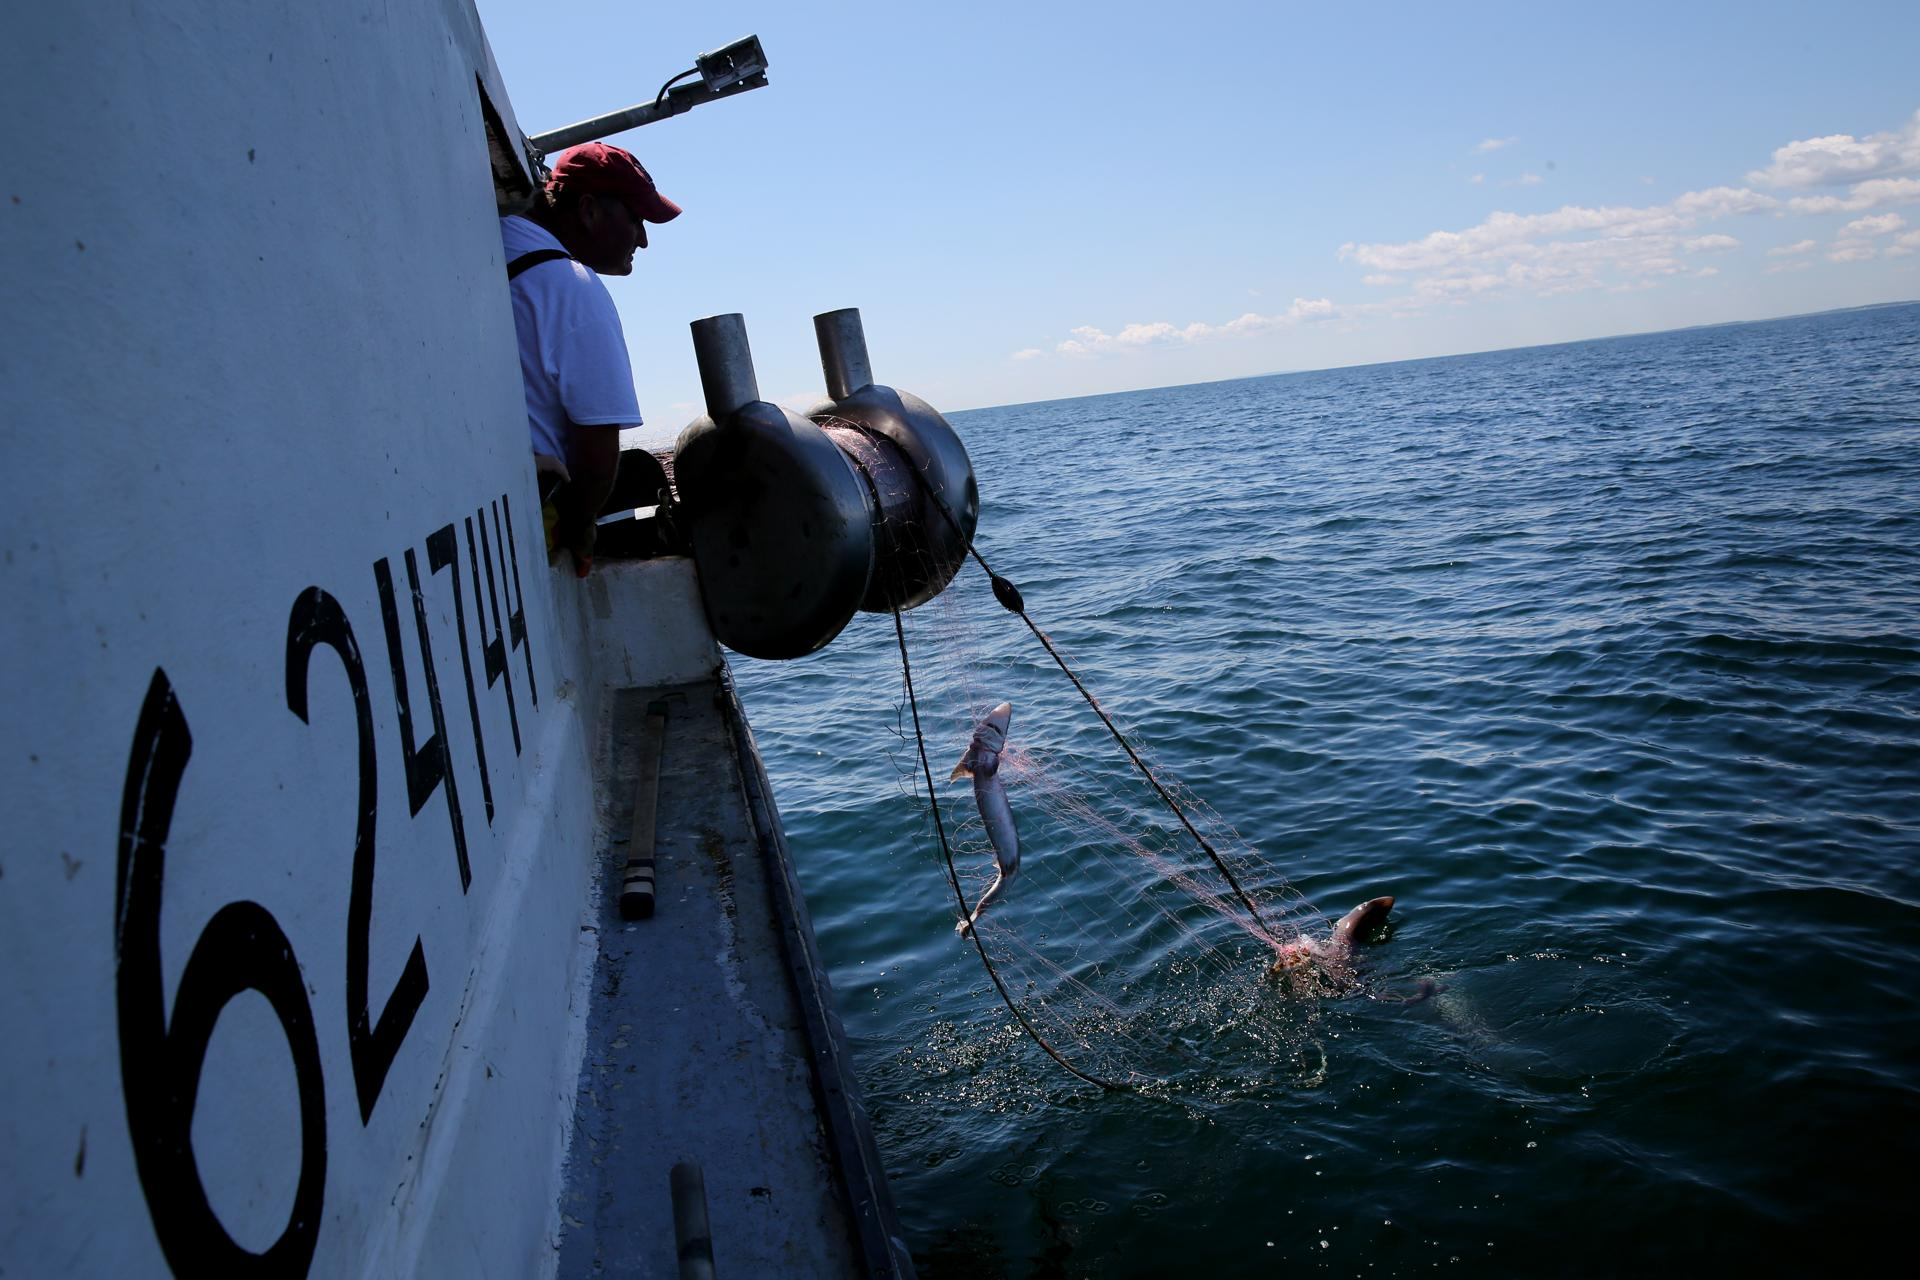 Captain Phil Lynch pulled in his gillnet while fishing for spiny dogfish during a training trip near Scituate.